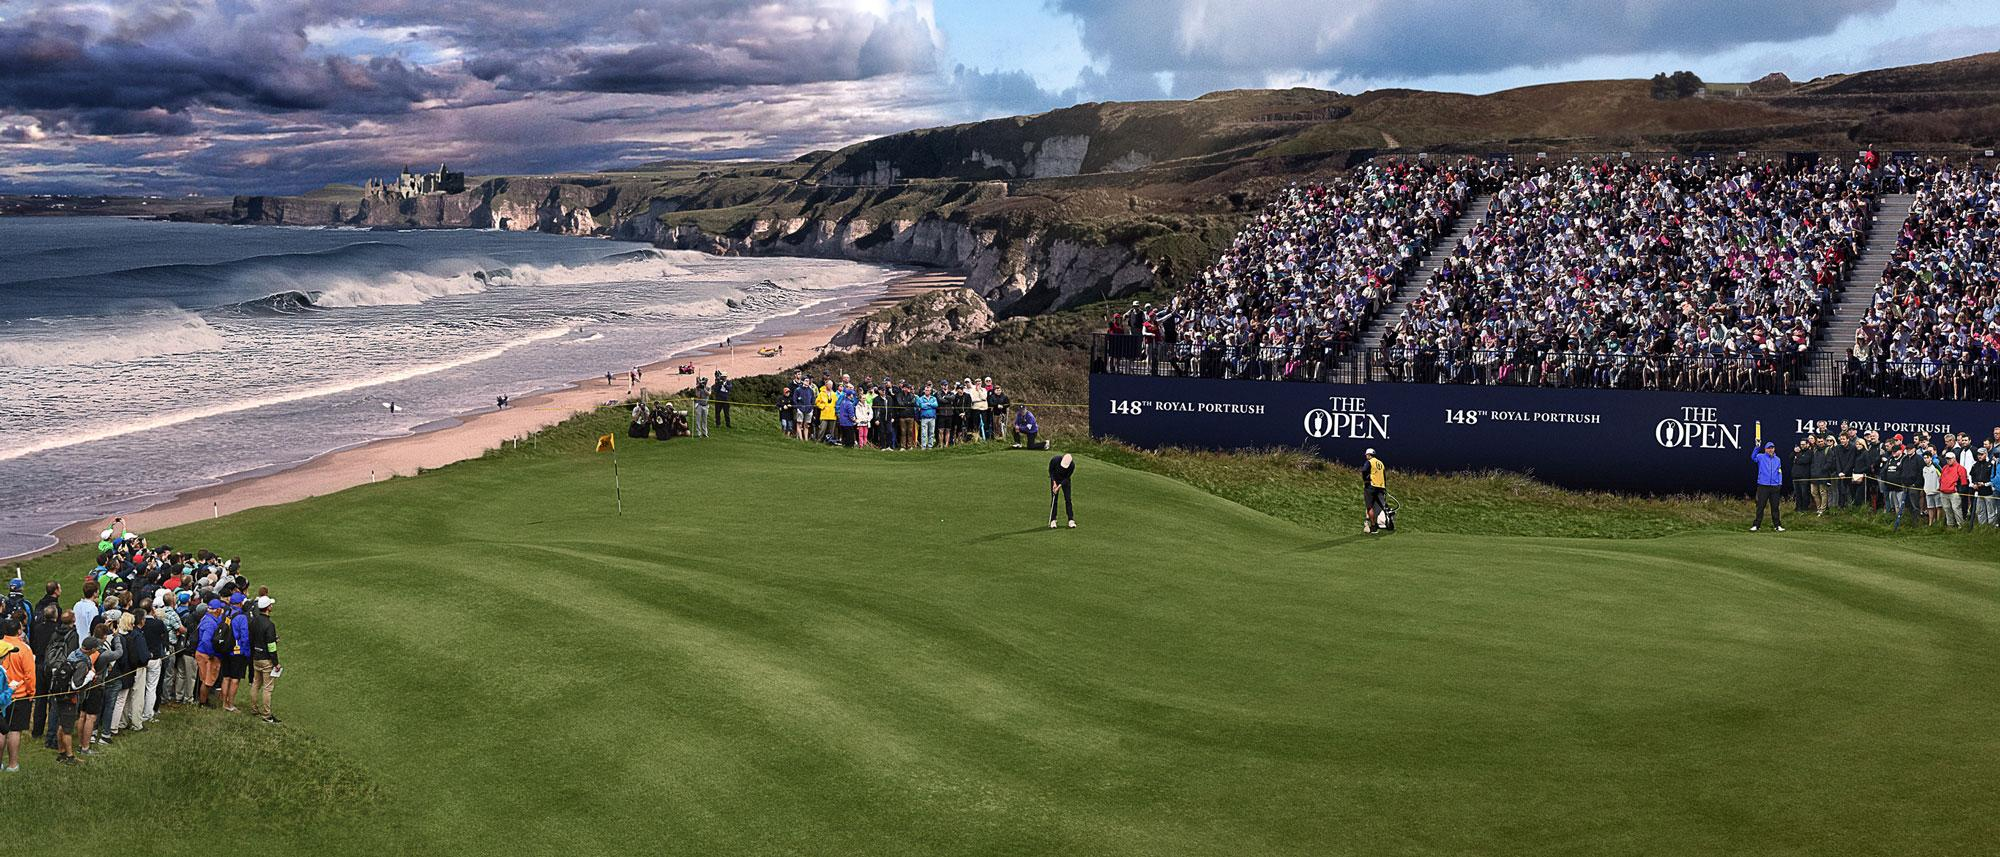 The Open 2019